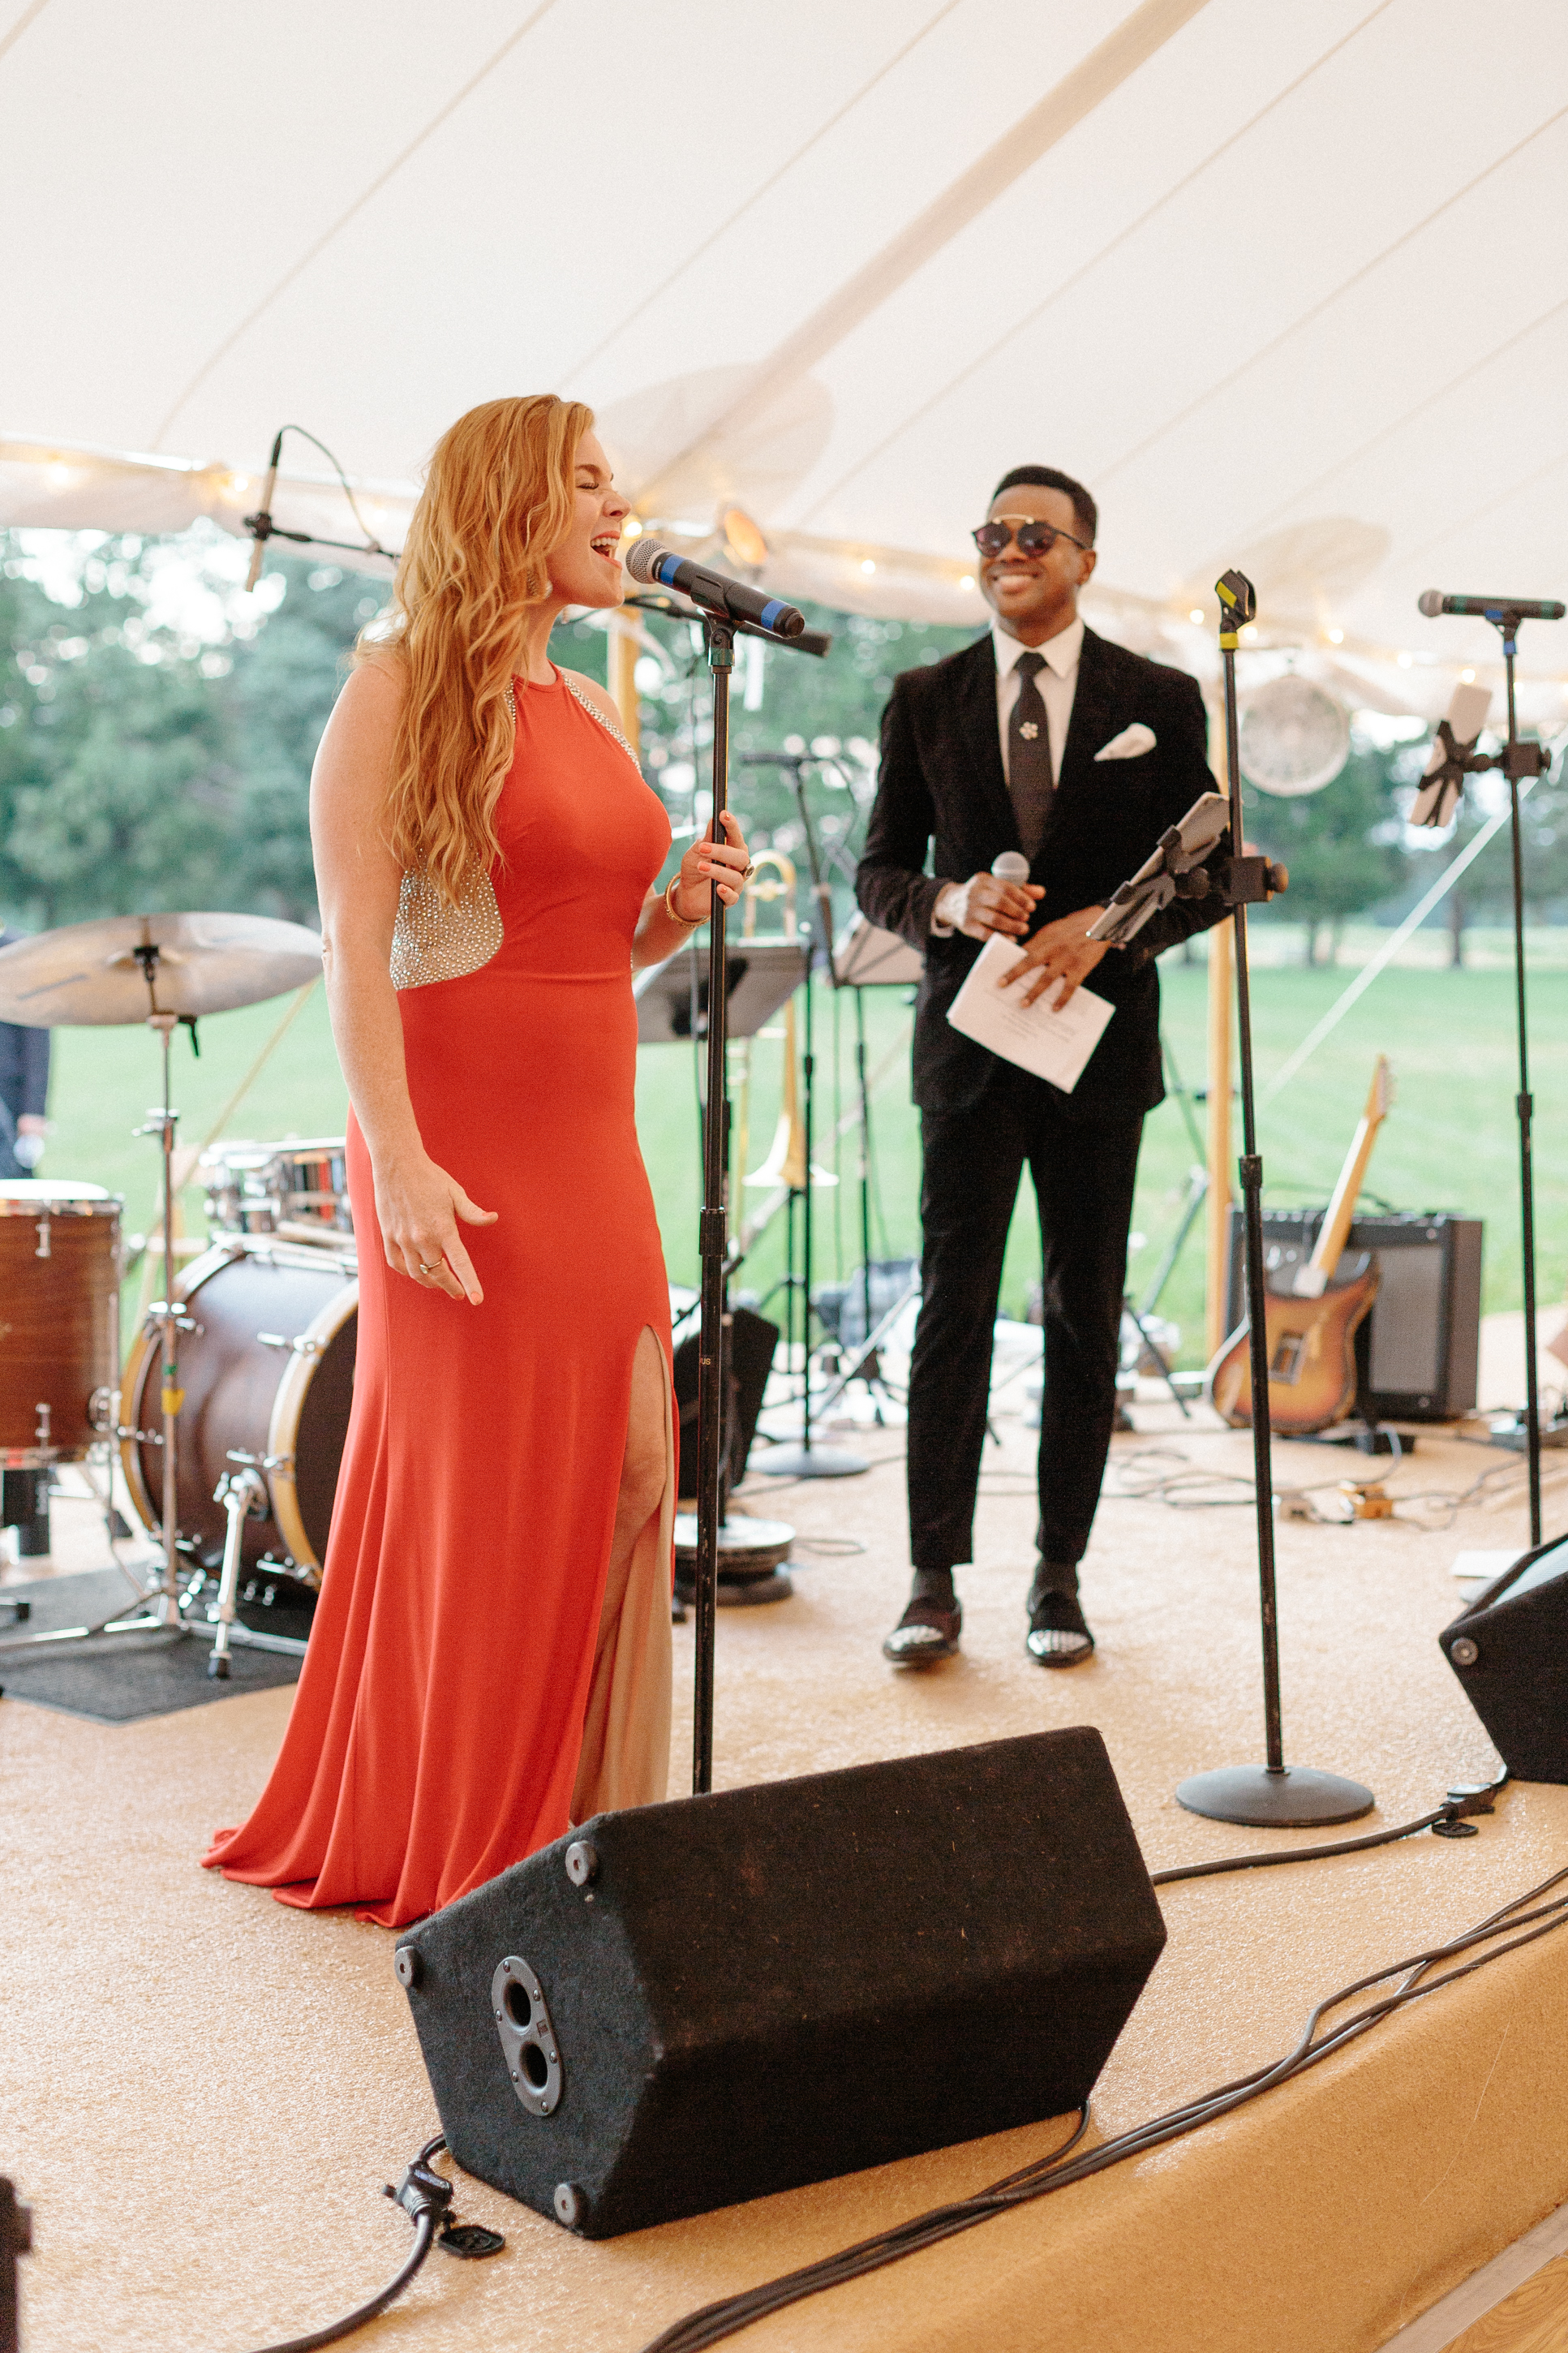 sultans-of-swing-maryland-wedding-band